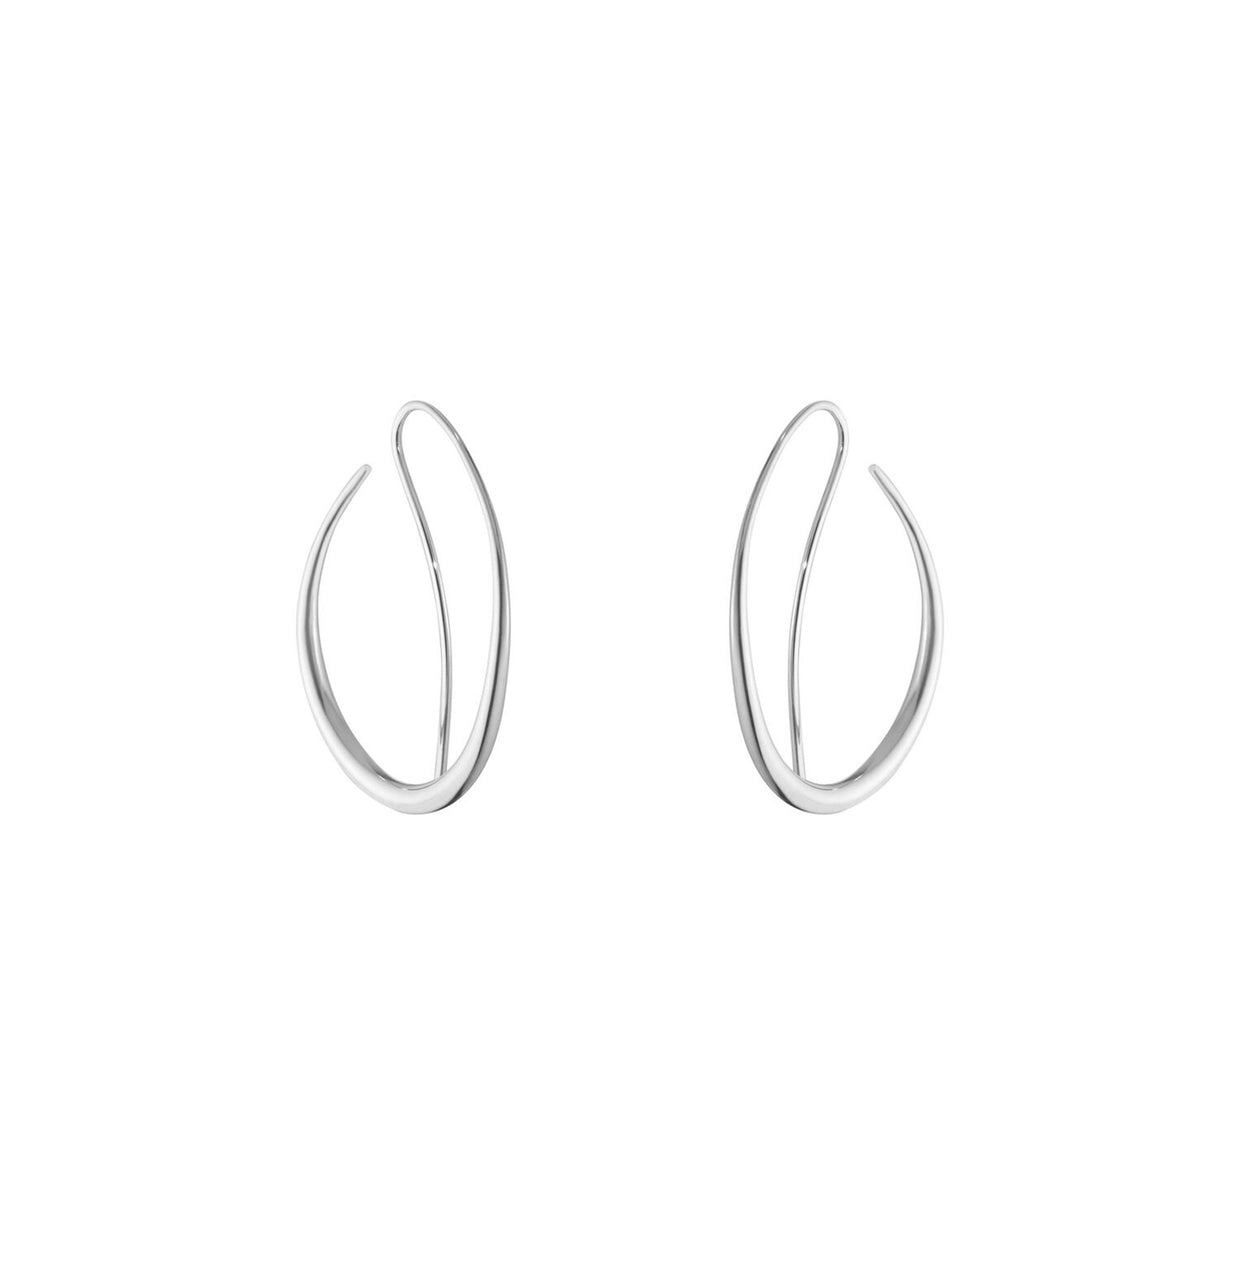 Georg Jensen Offspring Earhoops in Sterling Silver - Hamilton & Inches